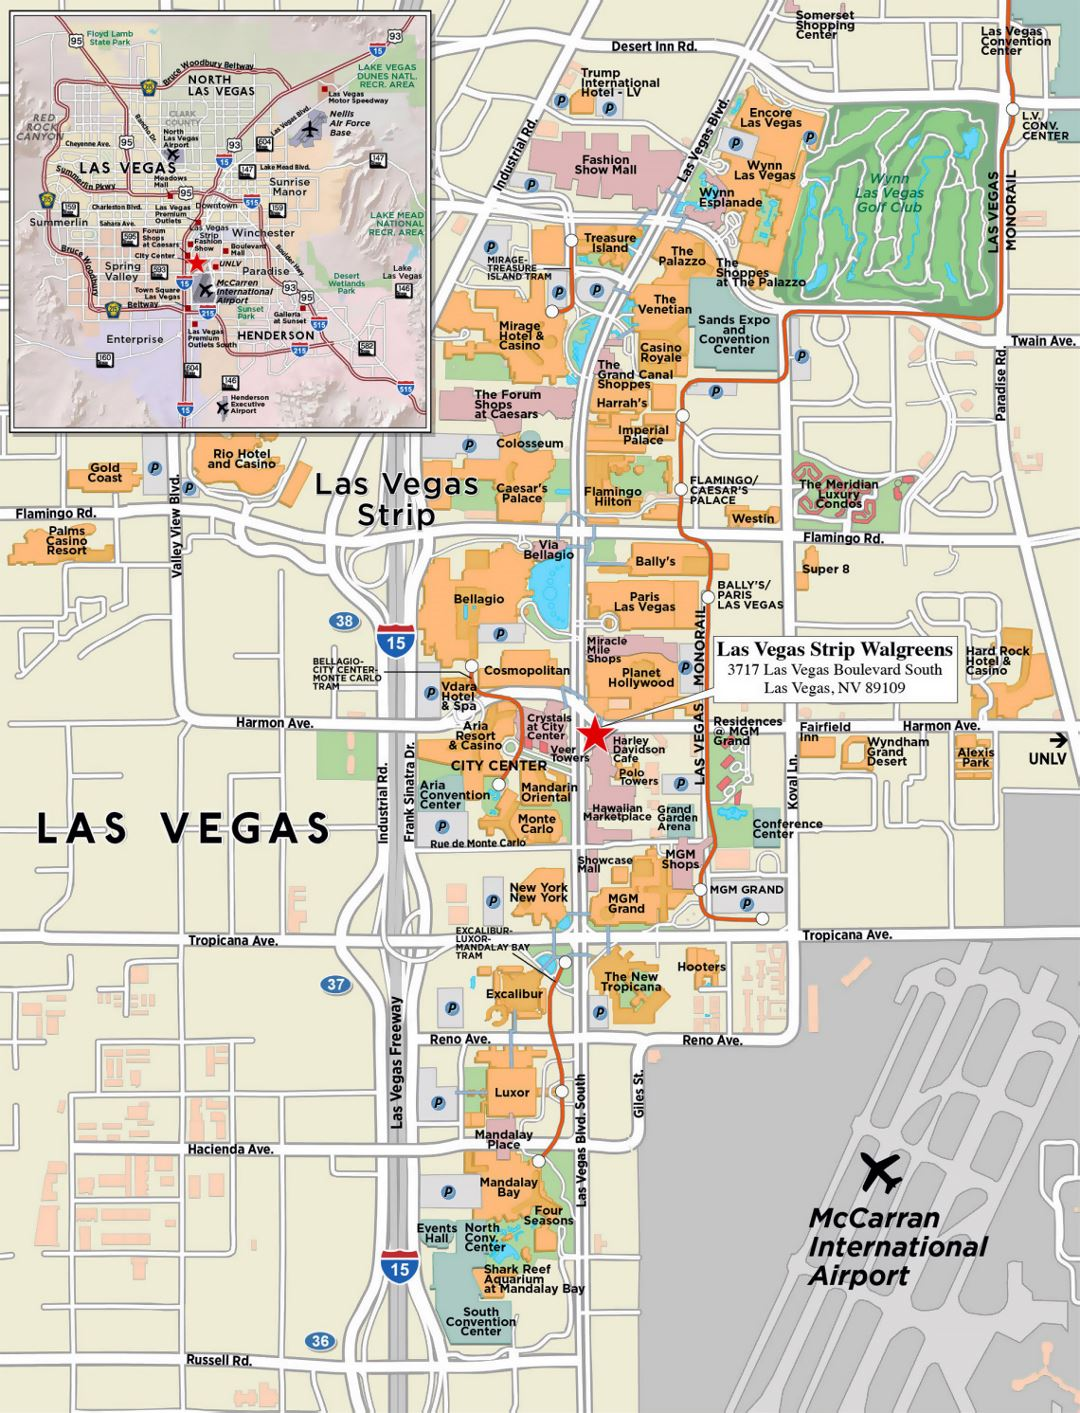 Large strip map of Las Vegas city